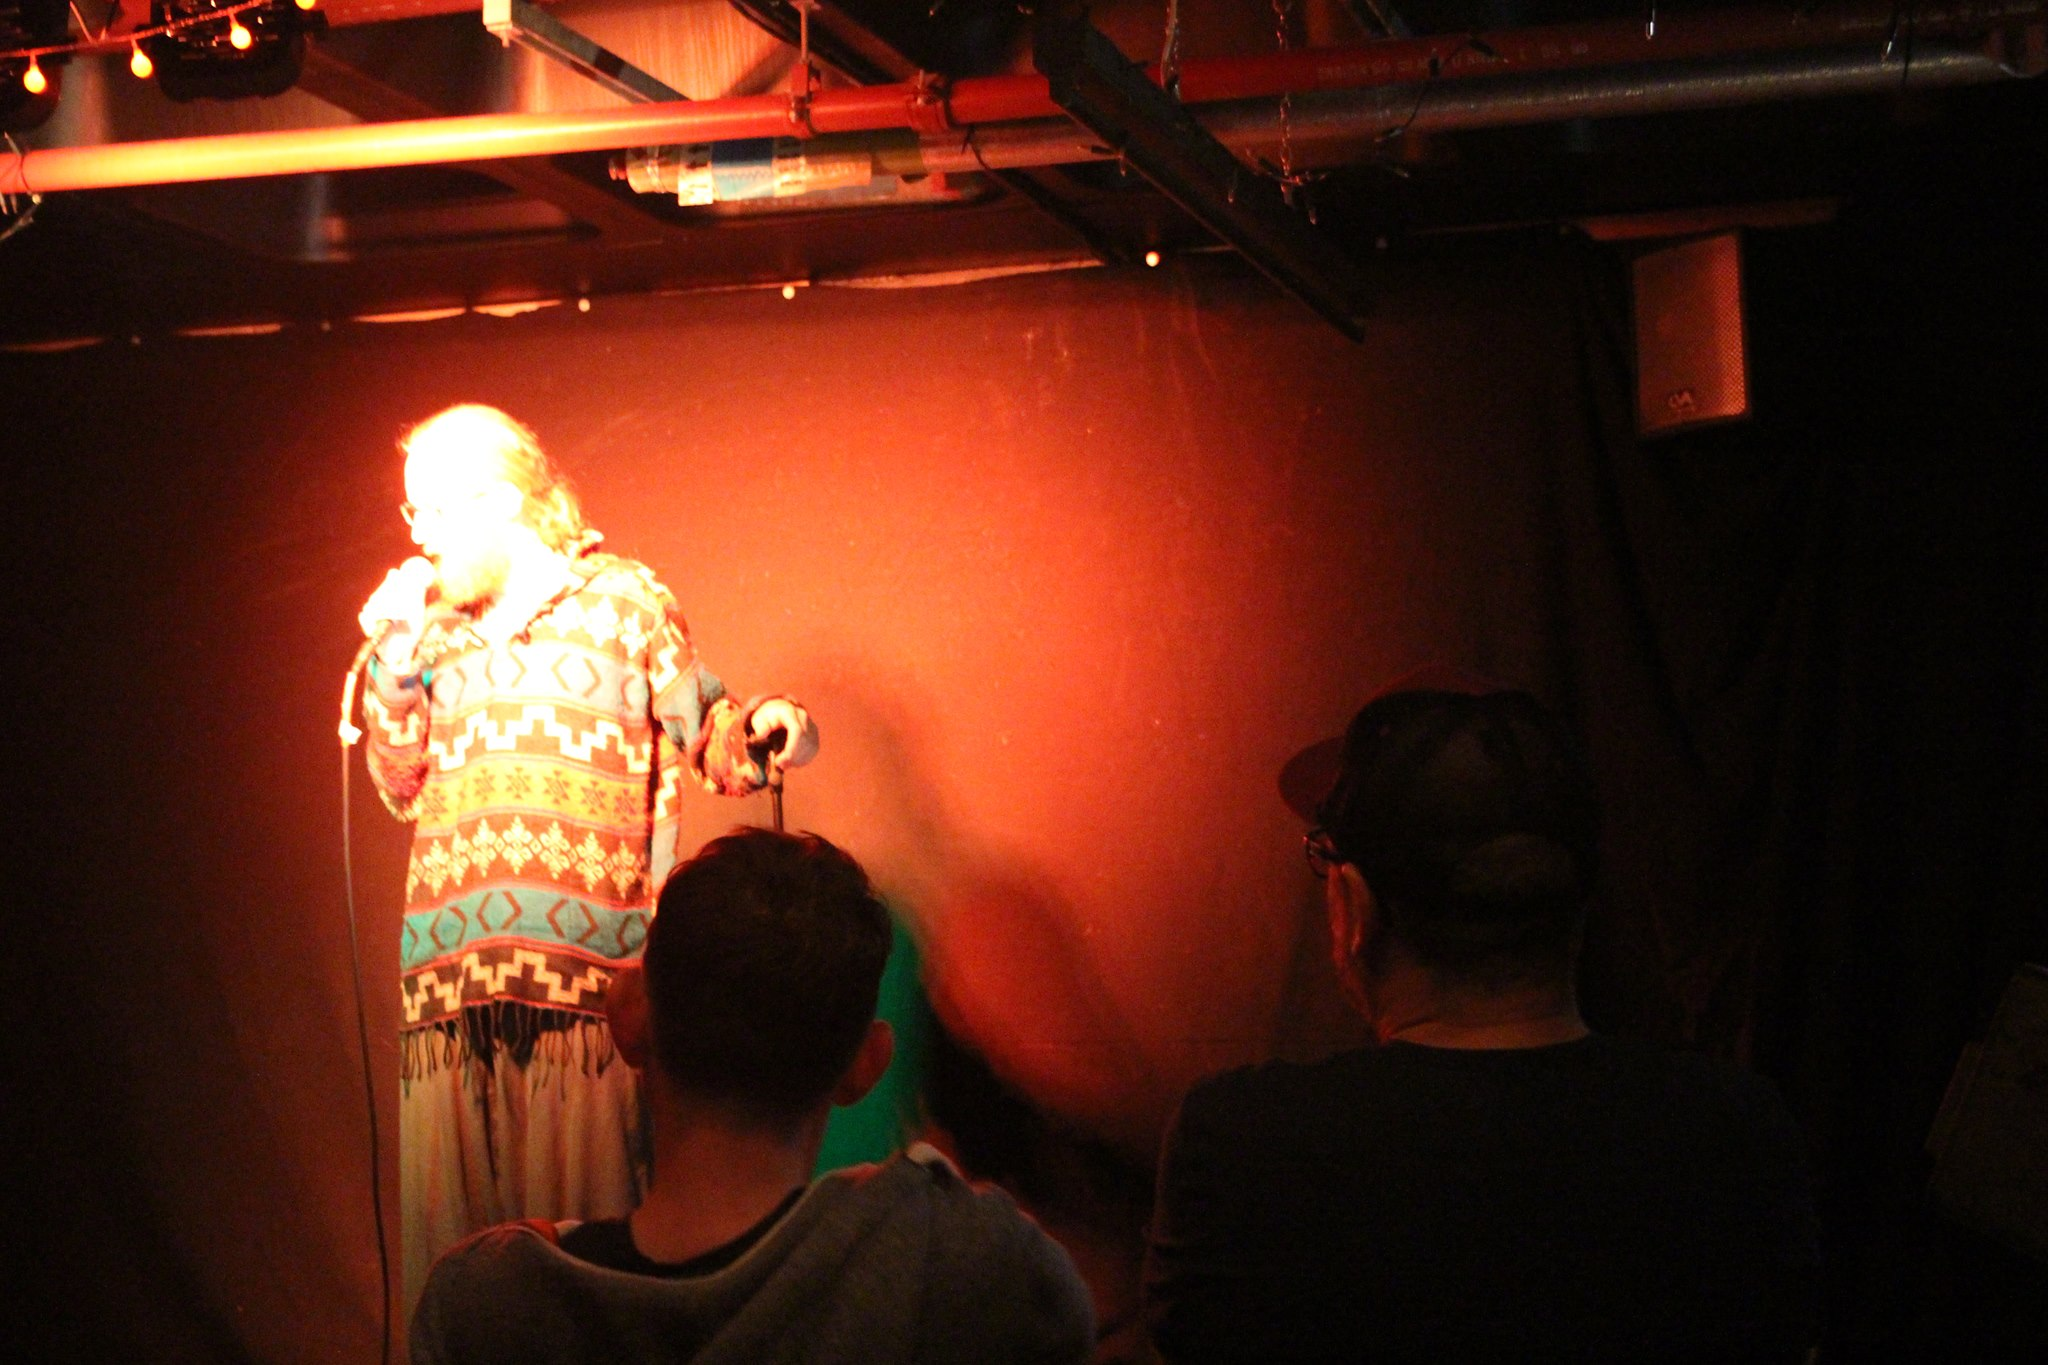 Coming 2nd at Hereford Comedy Fest